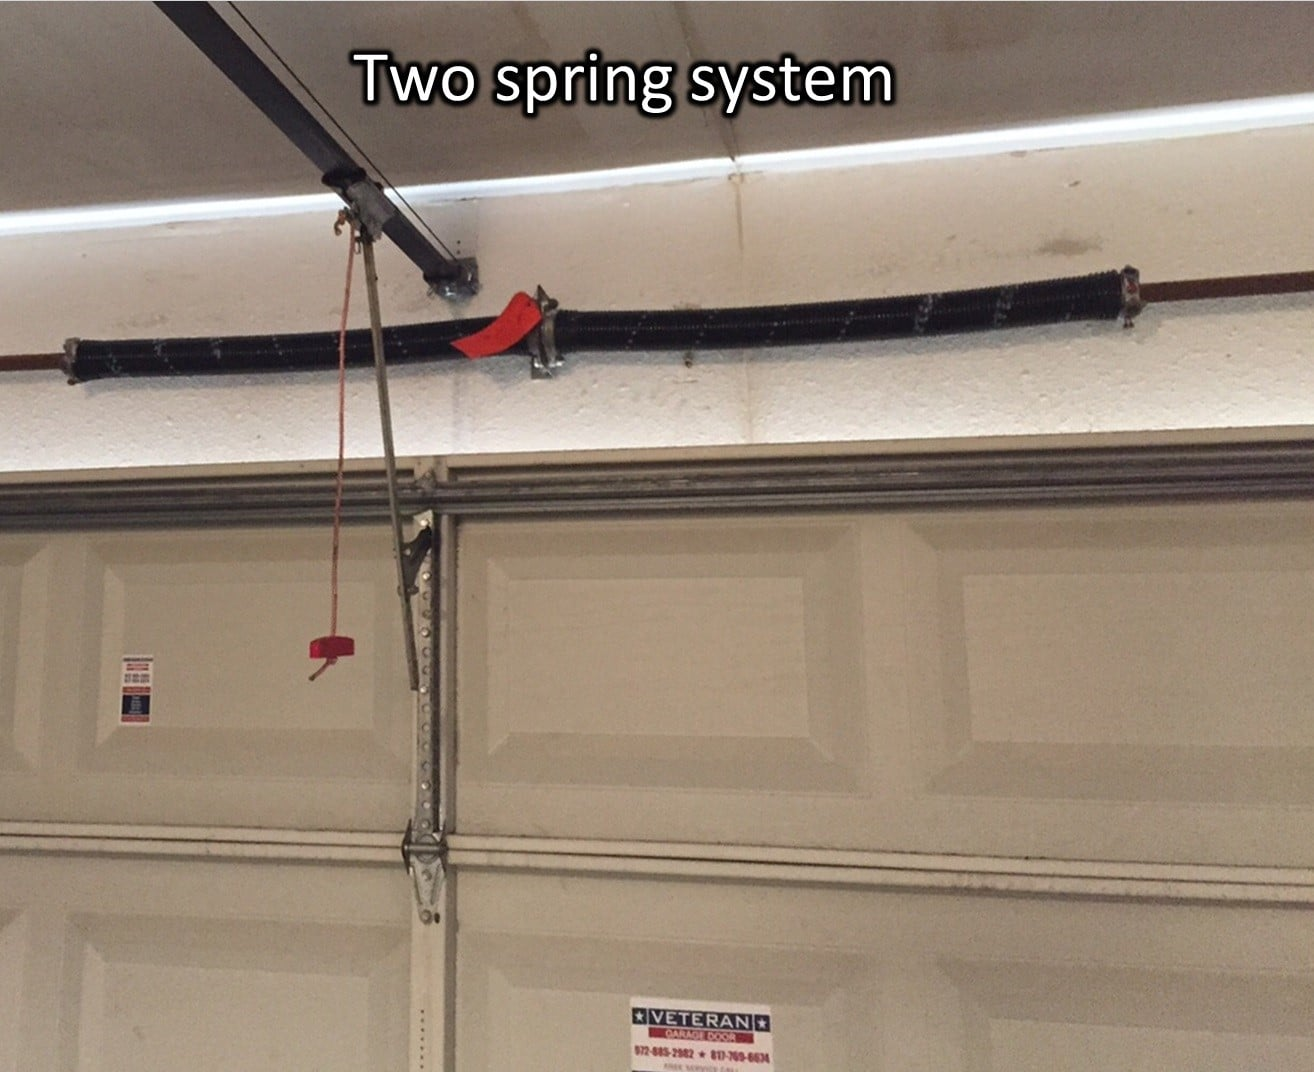 Two spring system